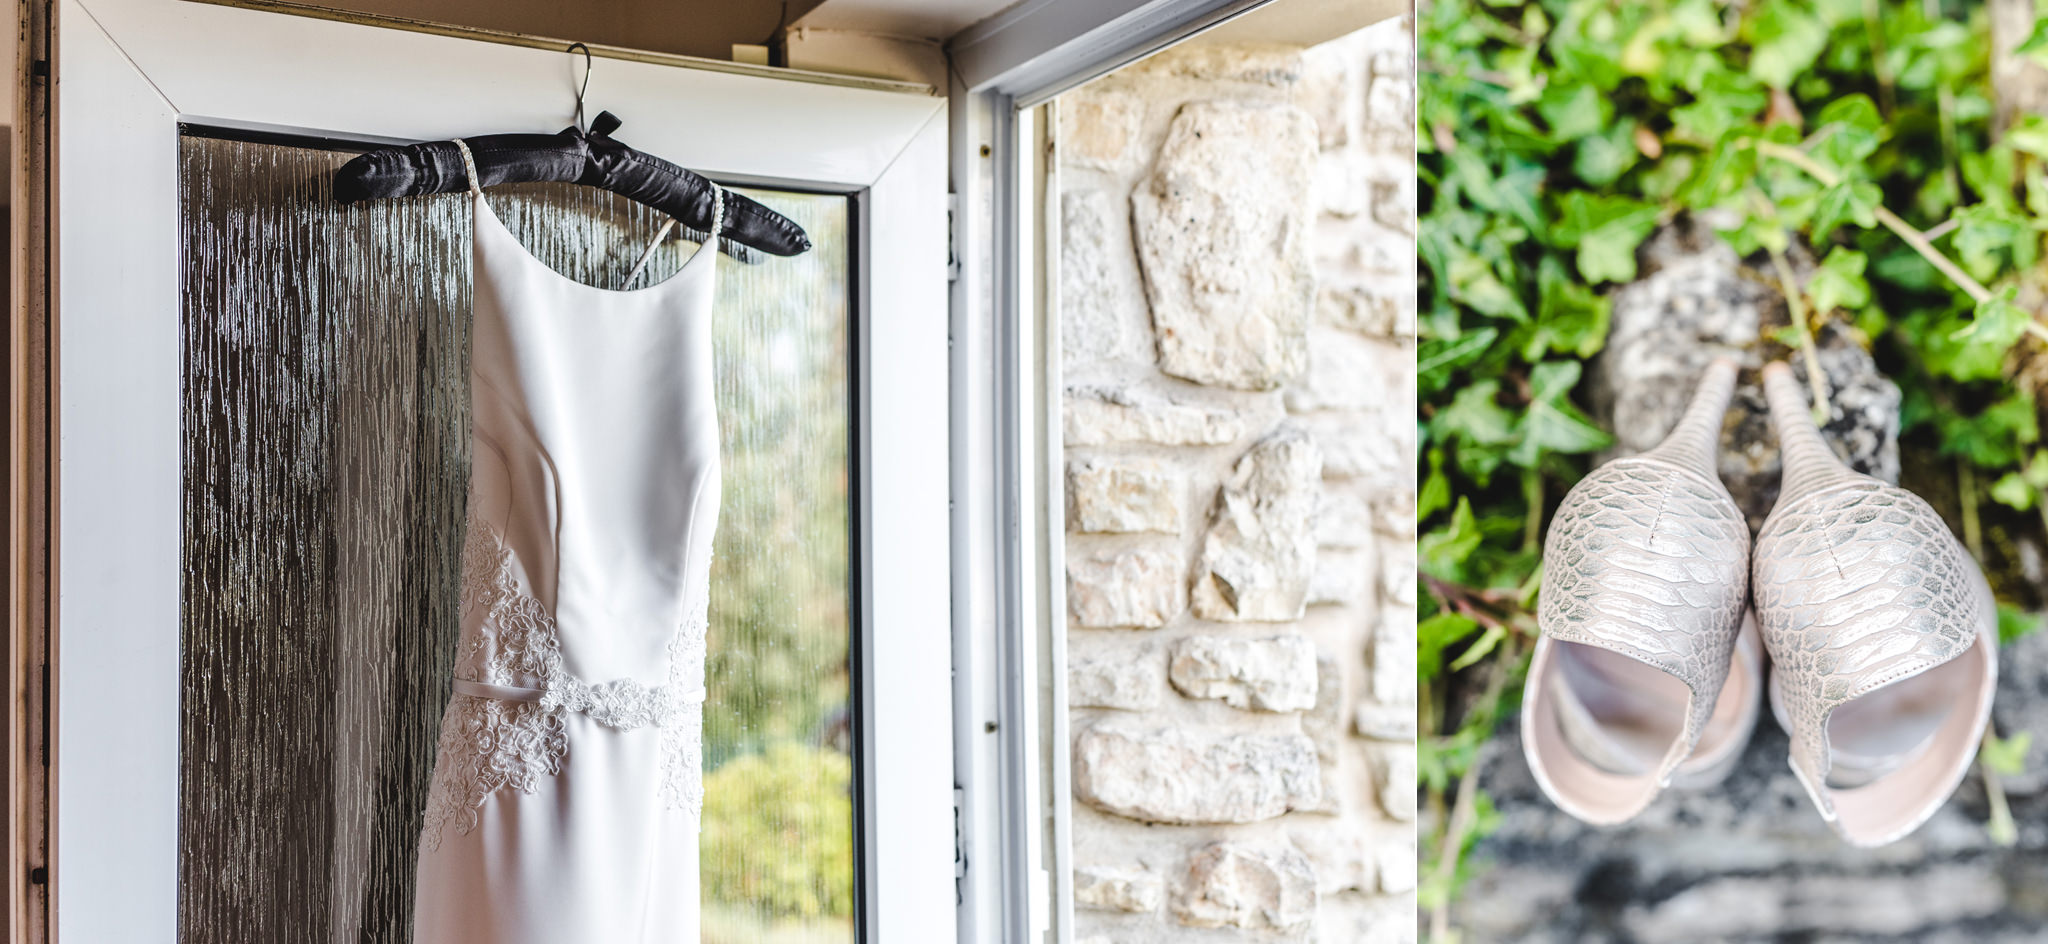 A wedding dress and shoes hanging up on a door